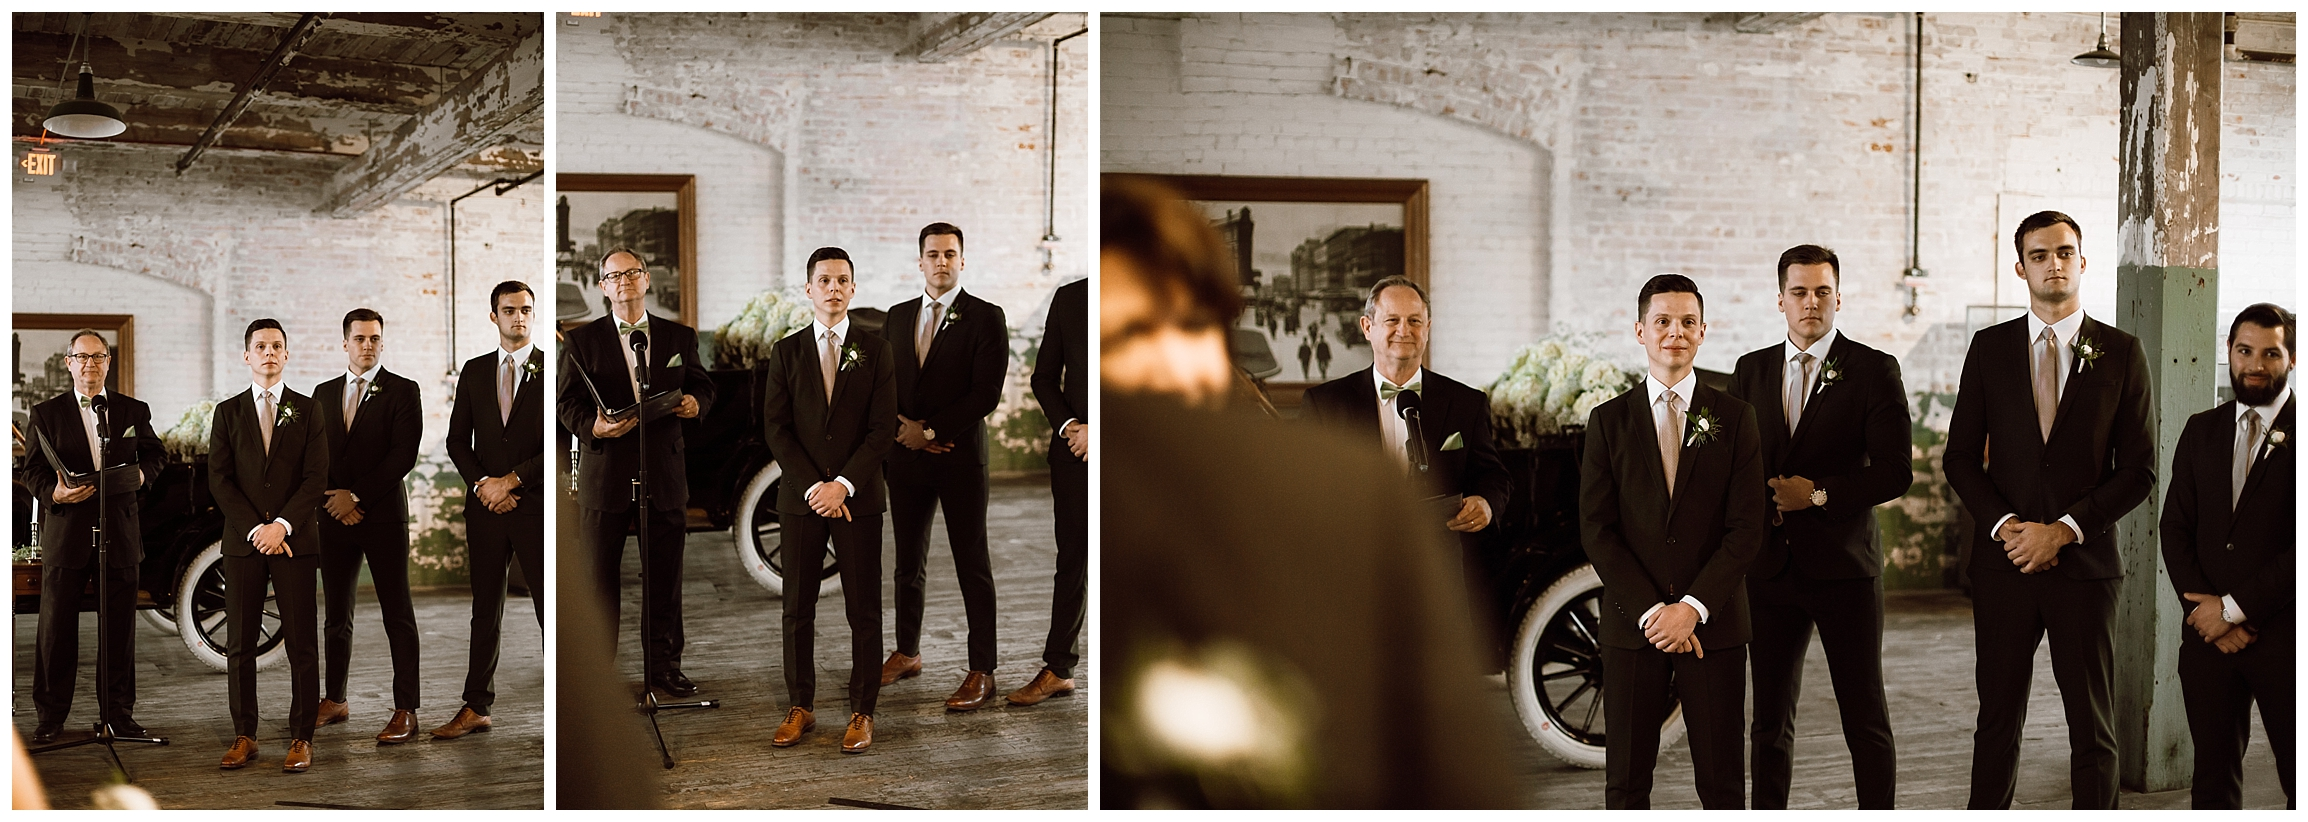 Katie_Vonasek_Photography_Ford_Piquette_Plant_Wedding_Detroit62.JPG